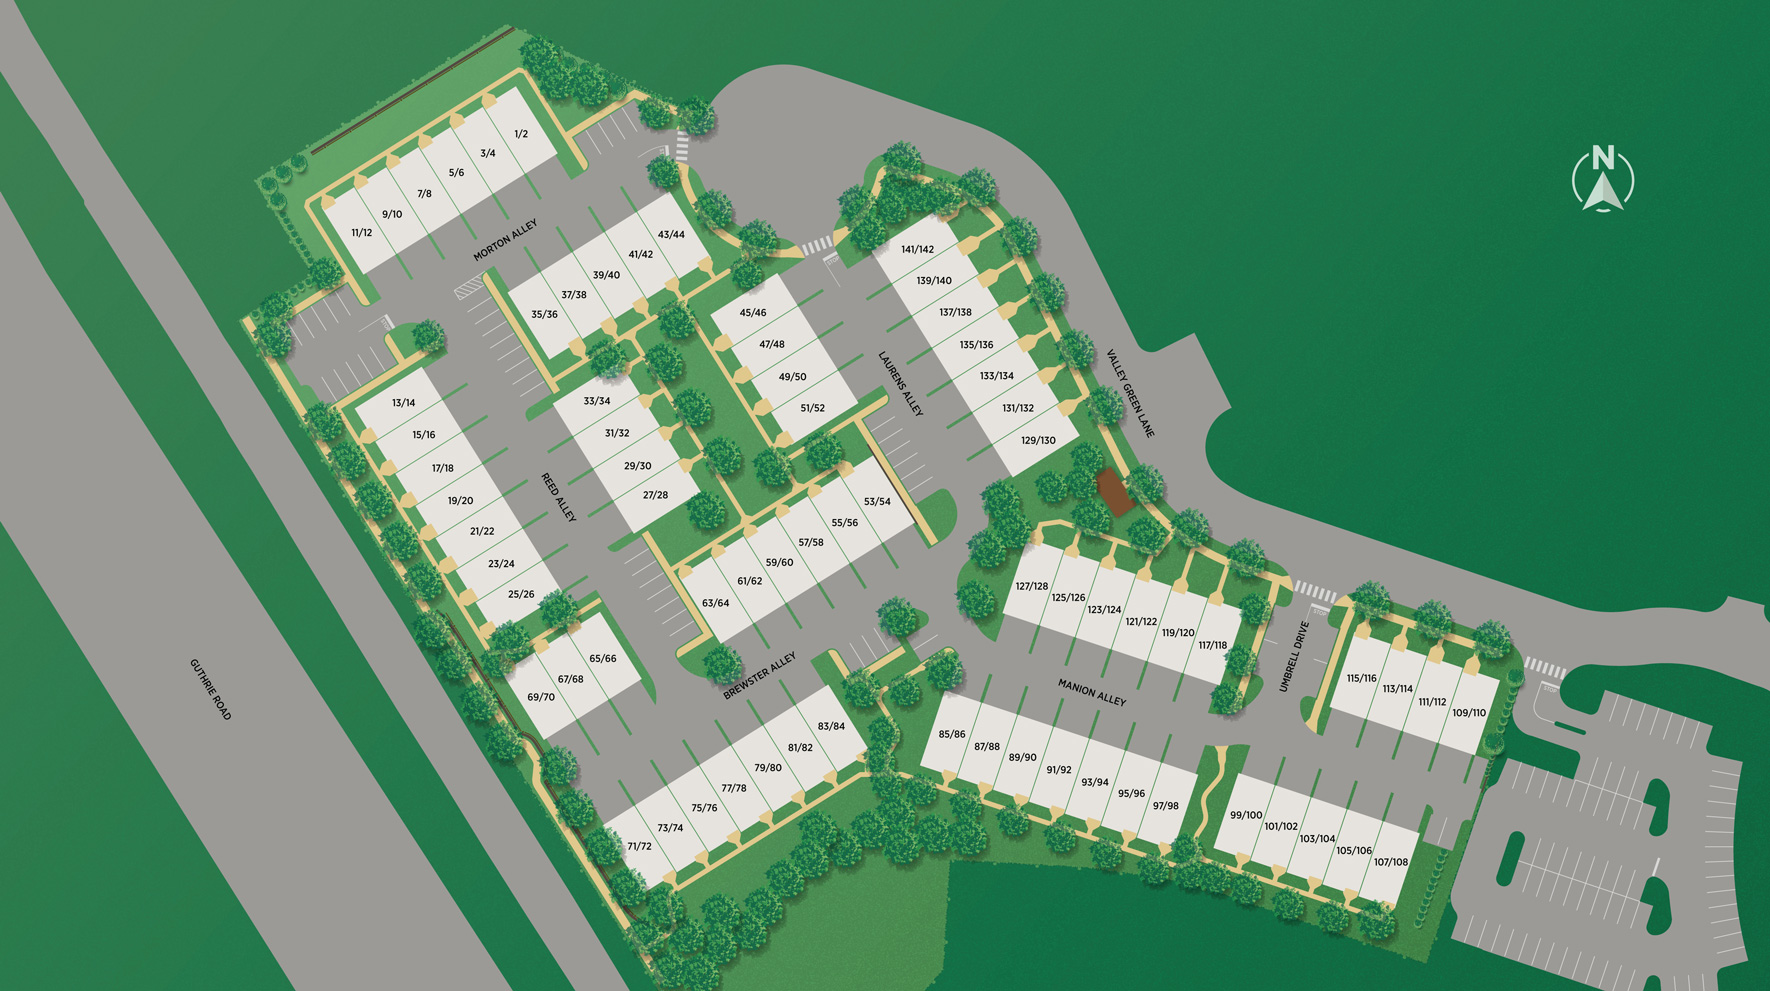 Overlook At Town Center - Site Plan